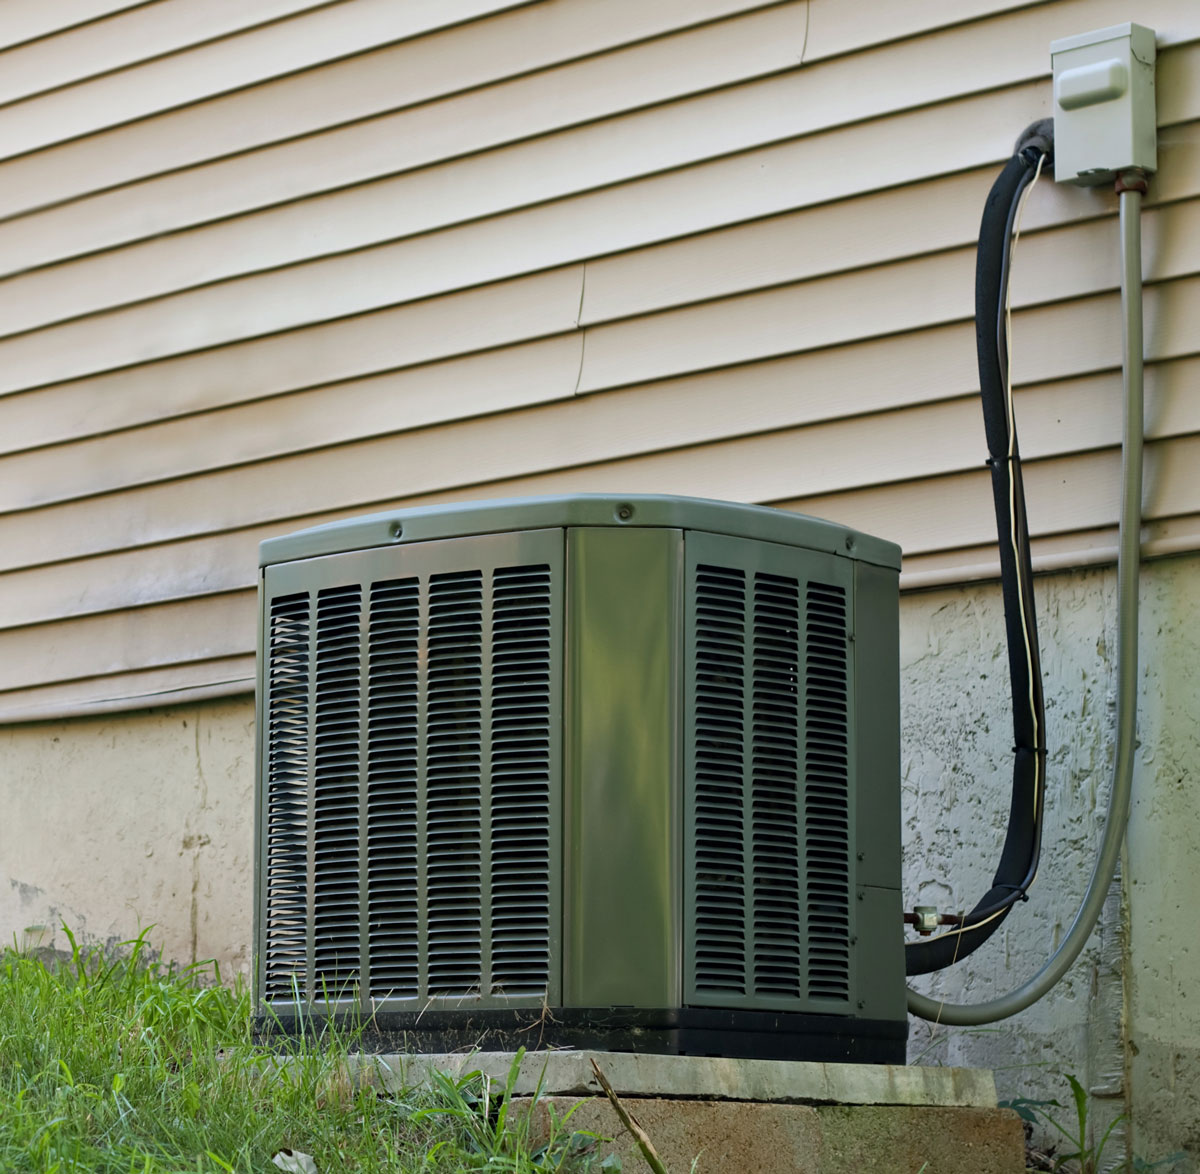 Know when to upgrade your HVAC equipment